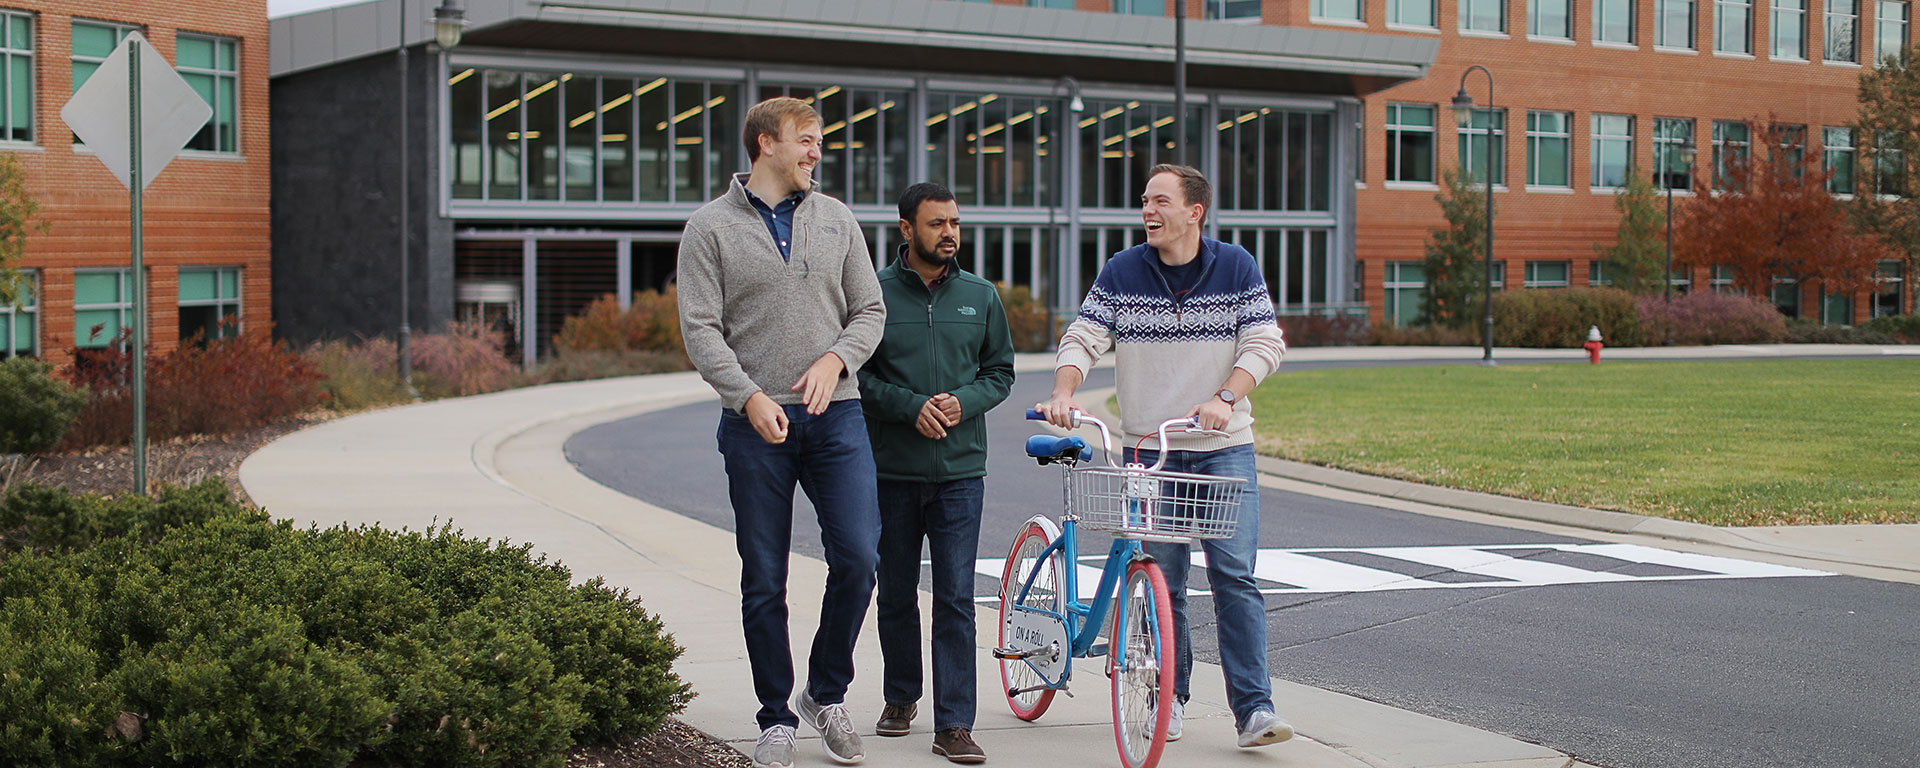 Capital One Software Engineer talks about the most surprising perks of being a software engineer and all the benefits of working at West Creek in Richmond